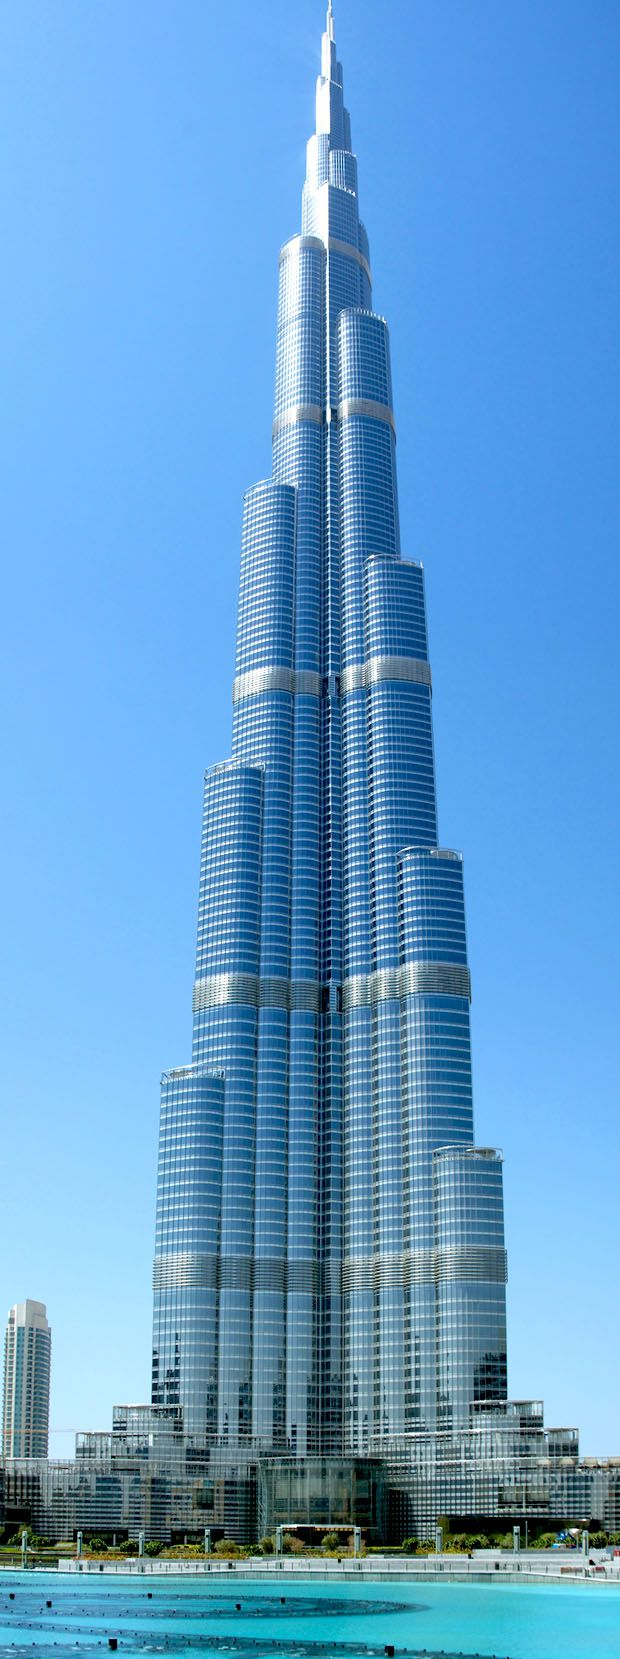 The world's tallest tower, the Burj Khalifa in Dubai is 828m high